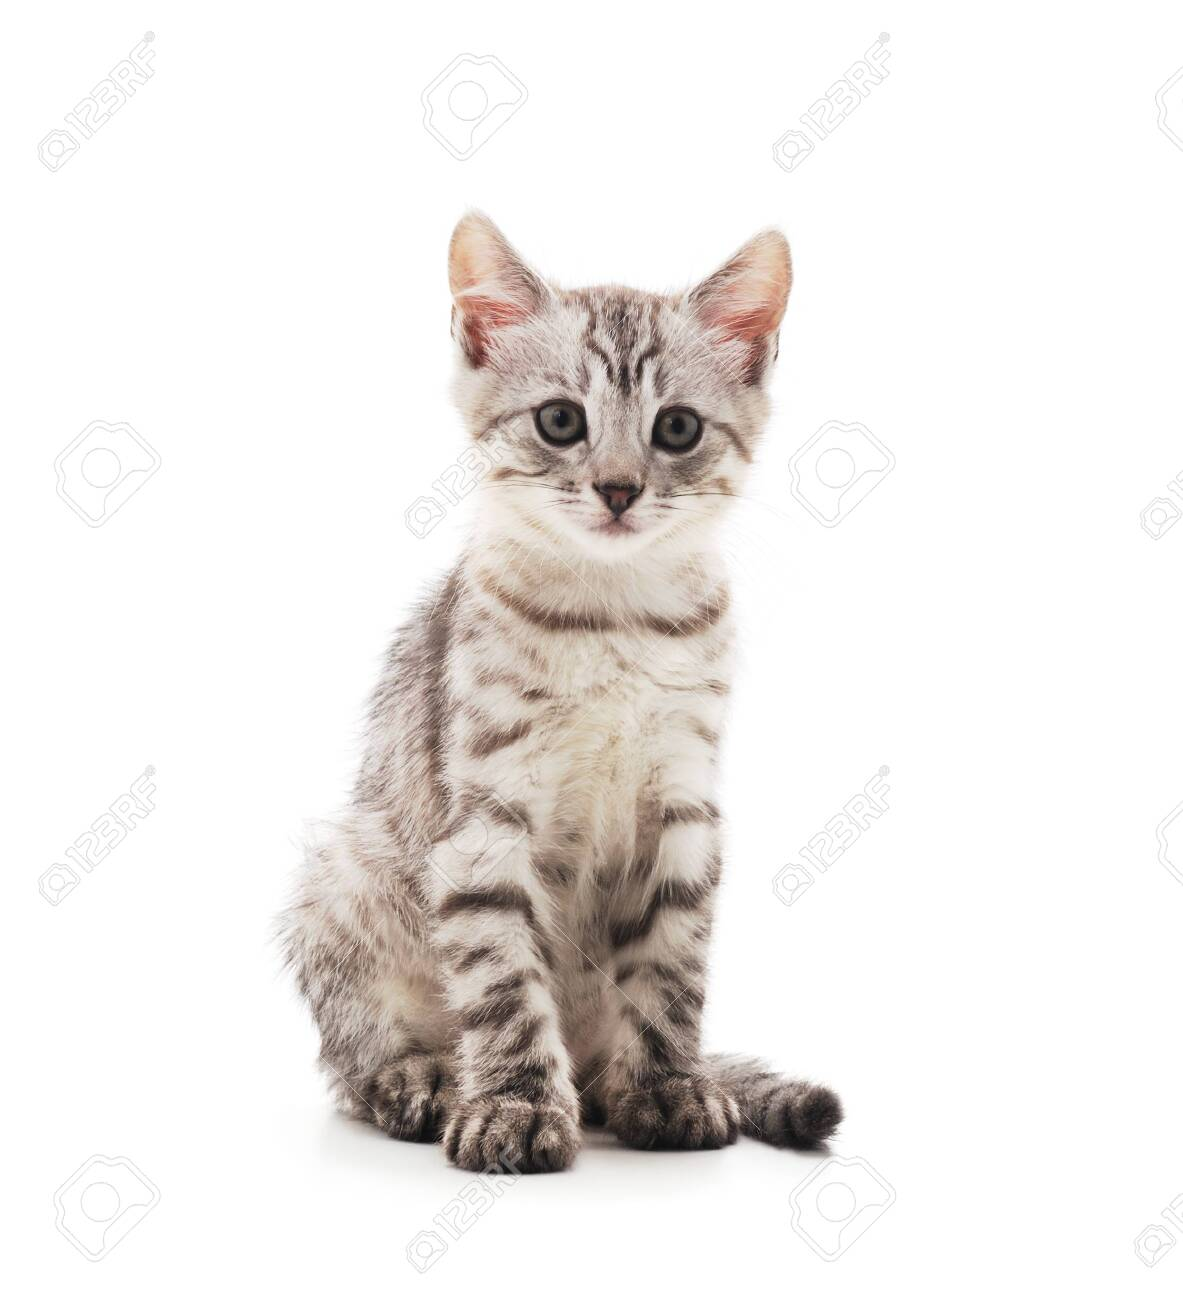 Little gray kitten isolated on a white background. - 134486578